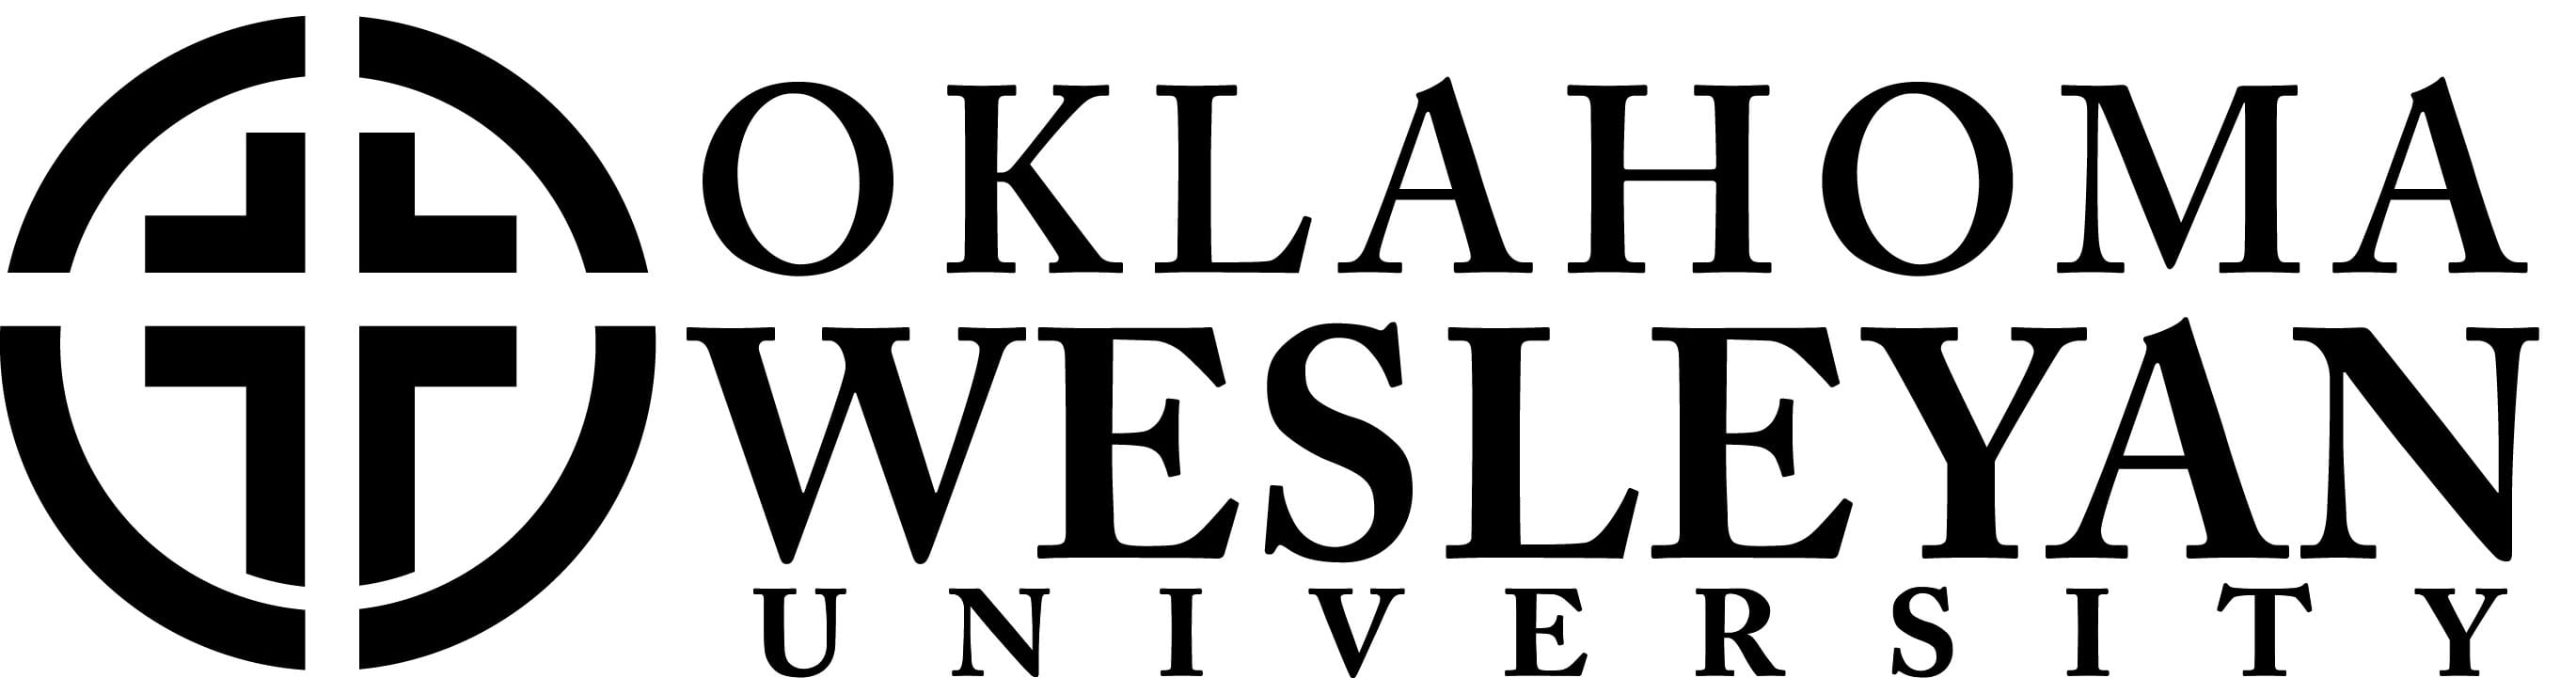 Online mba in human resources 2018 degree info oklahoma wesleyan university 1betcityfo Choice Image